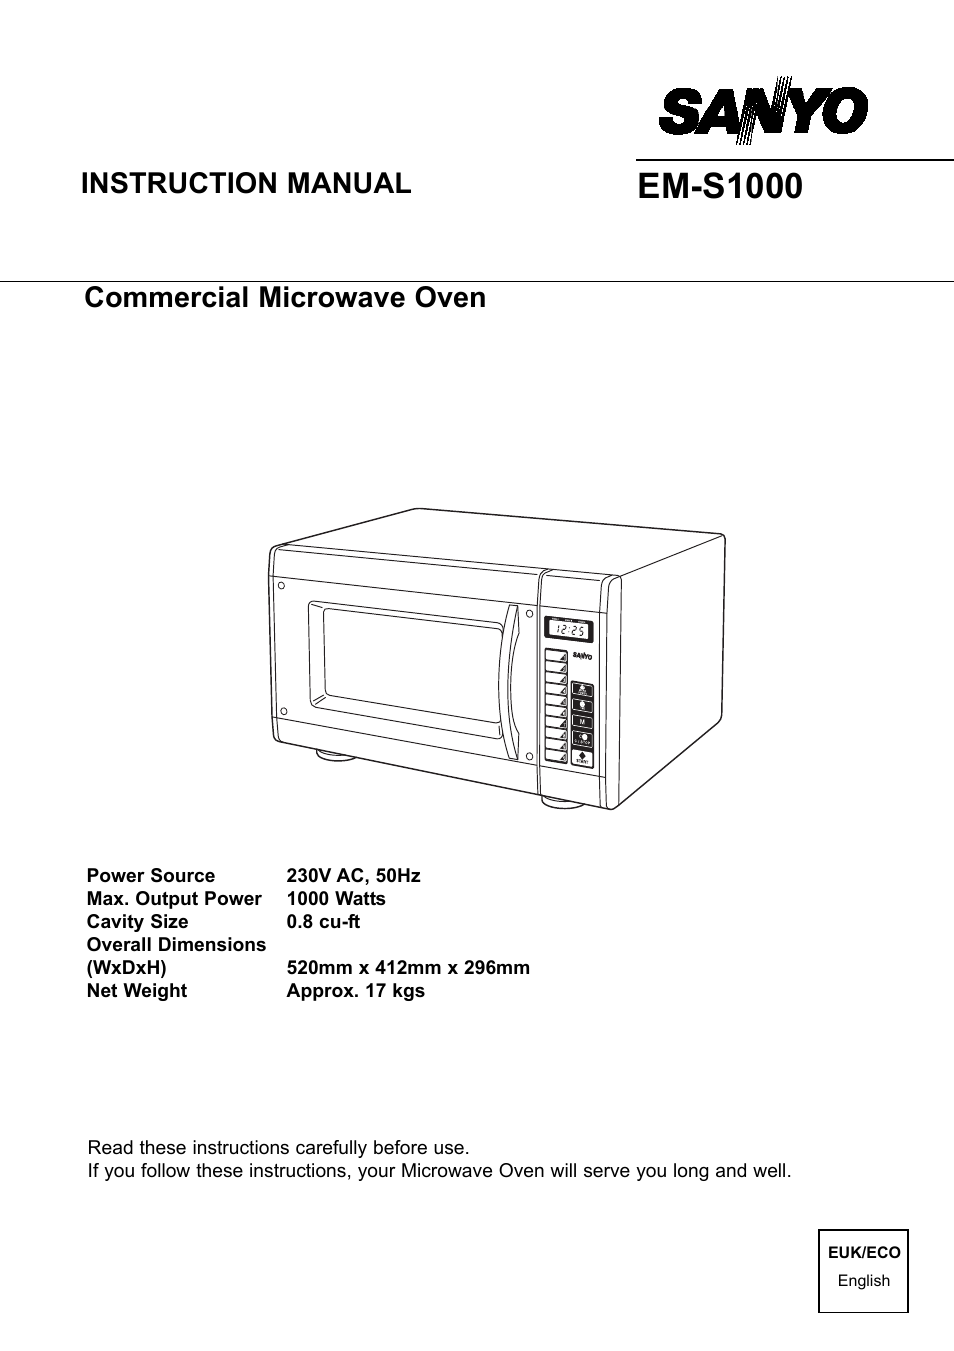 Sanyo Em S1000 User Manual 18 Pages